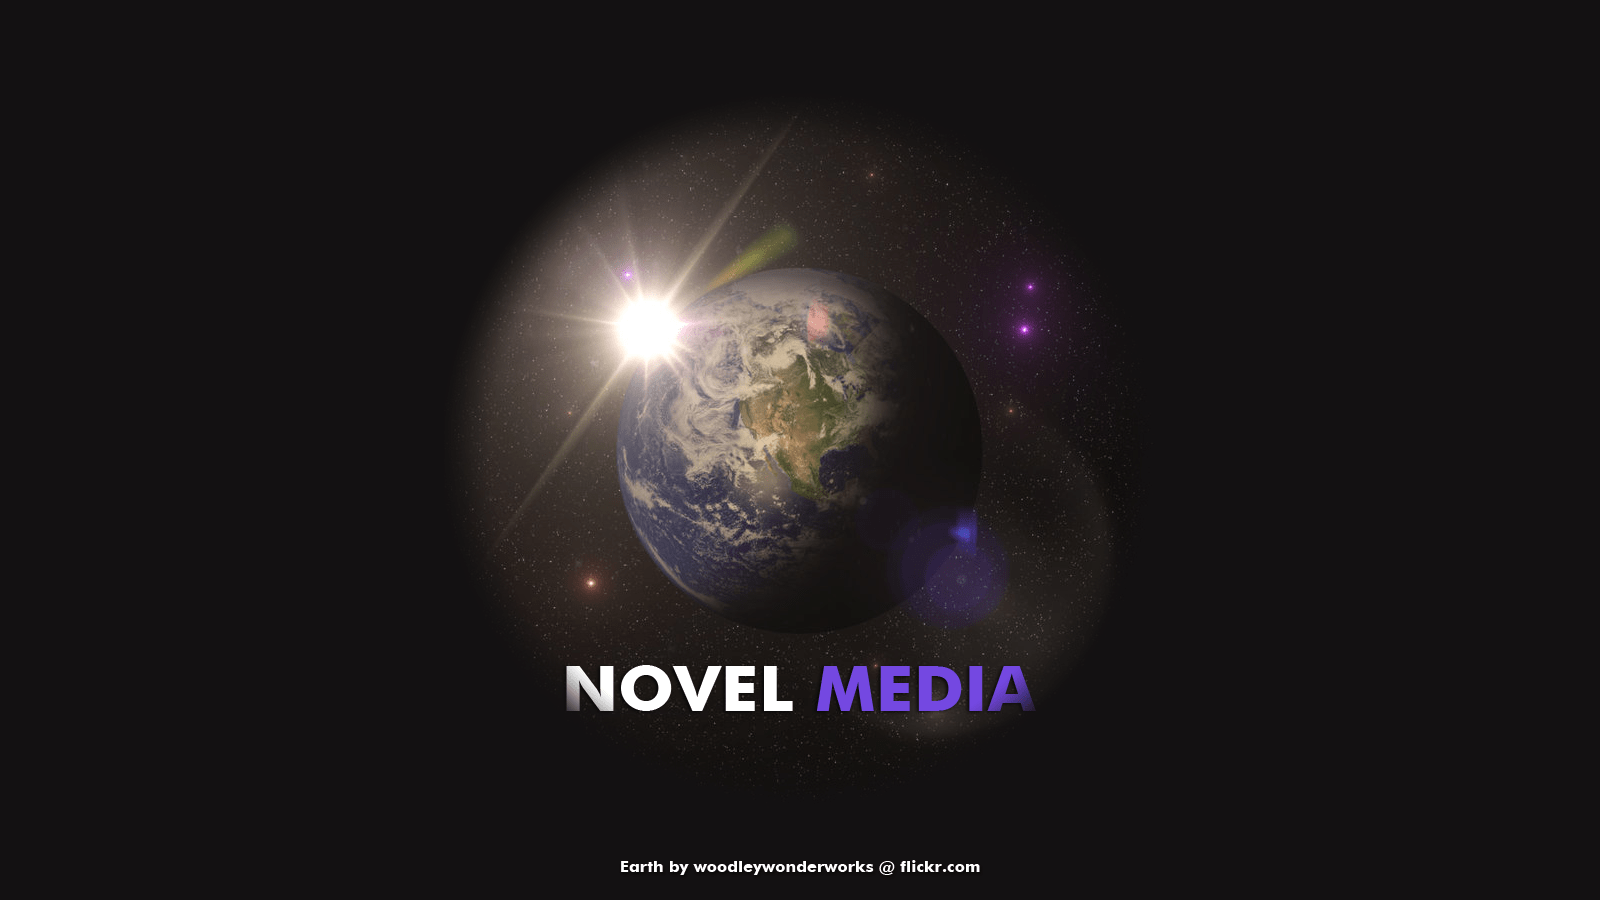 Novel Media - Logo Image